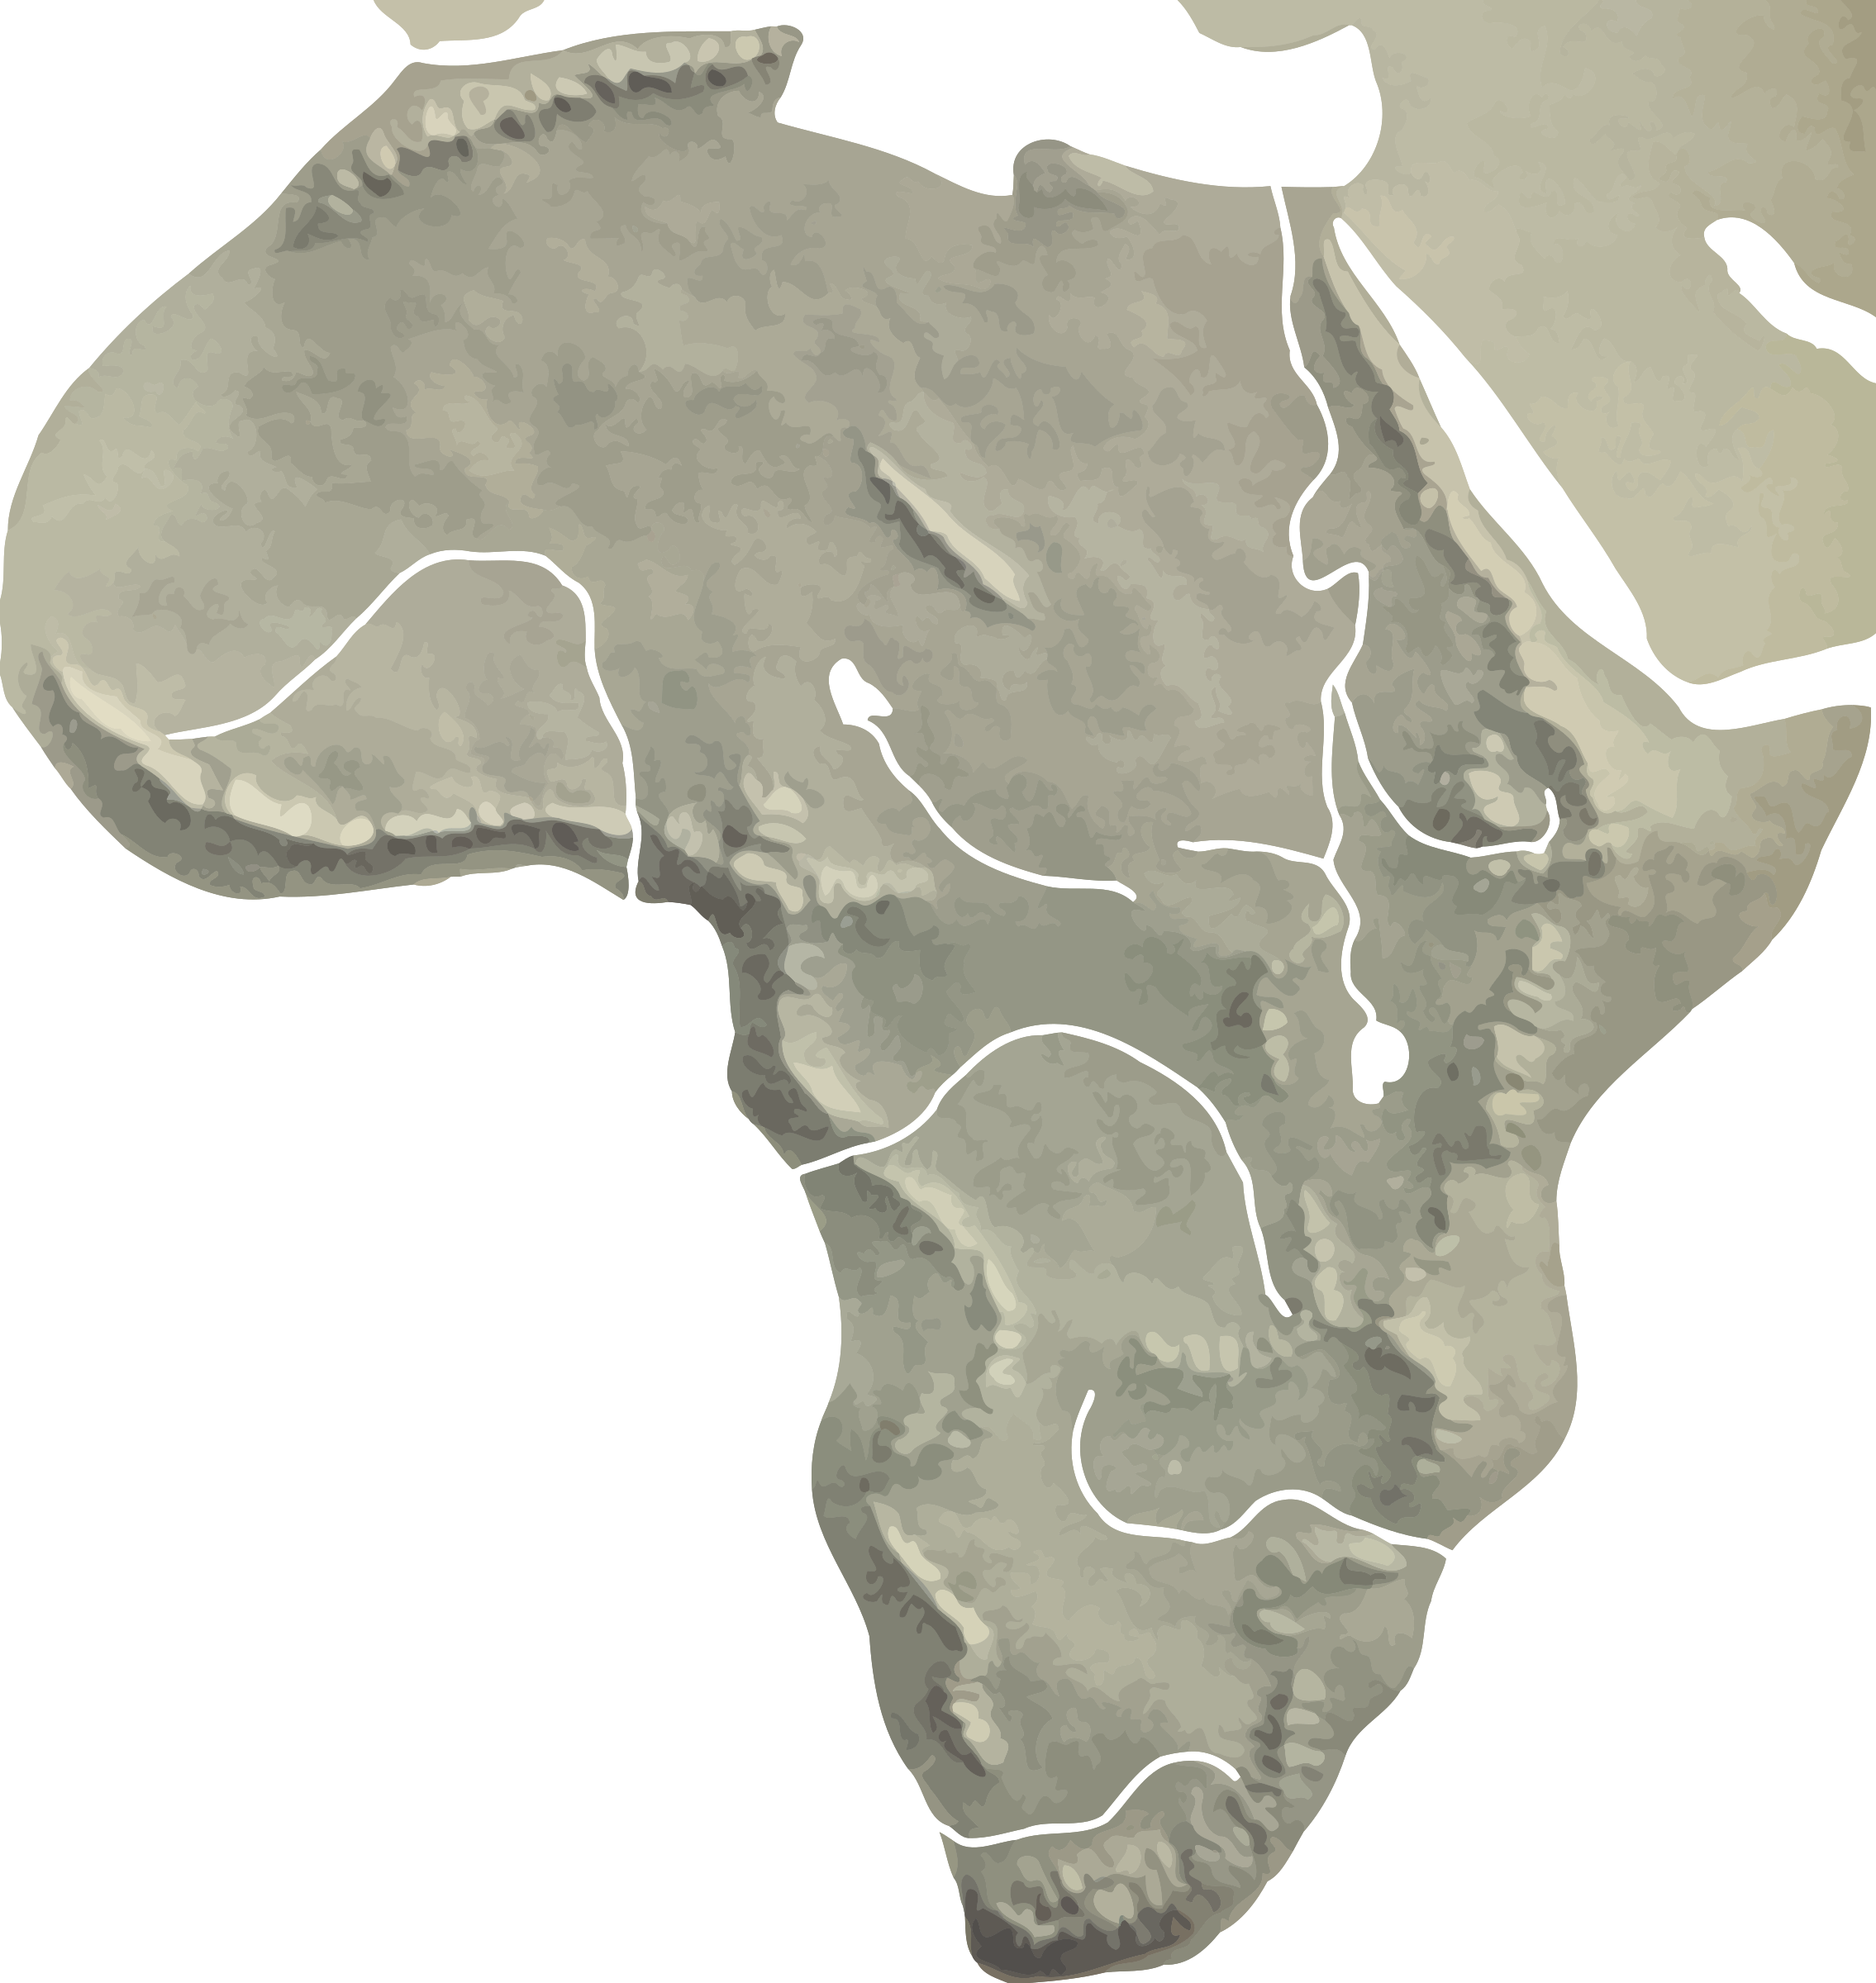 Africa relief map by Firkin